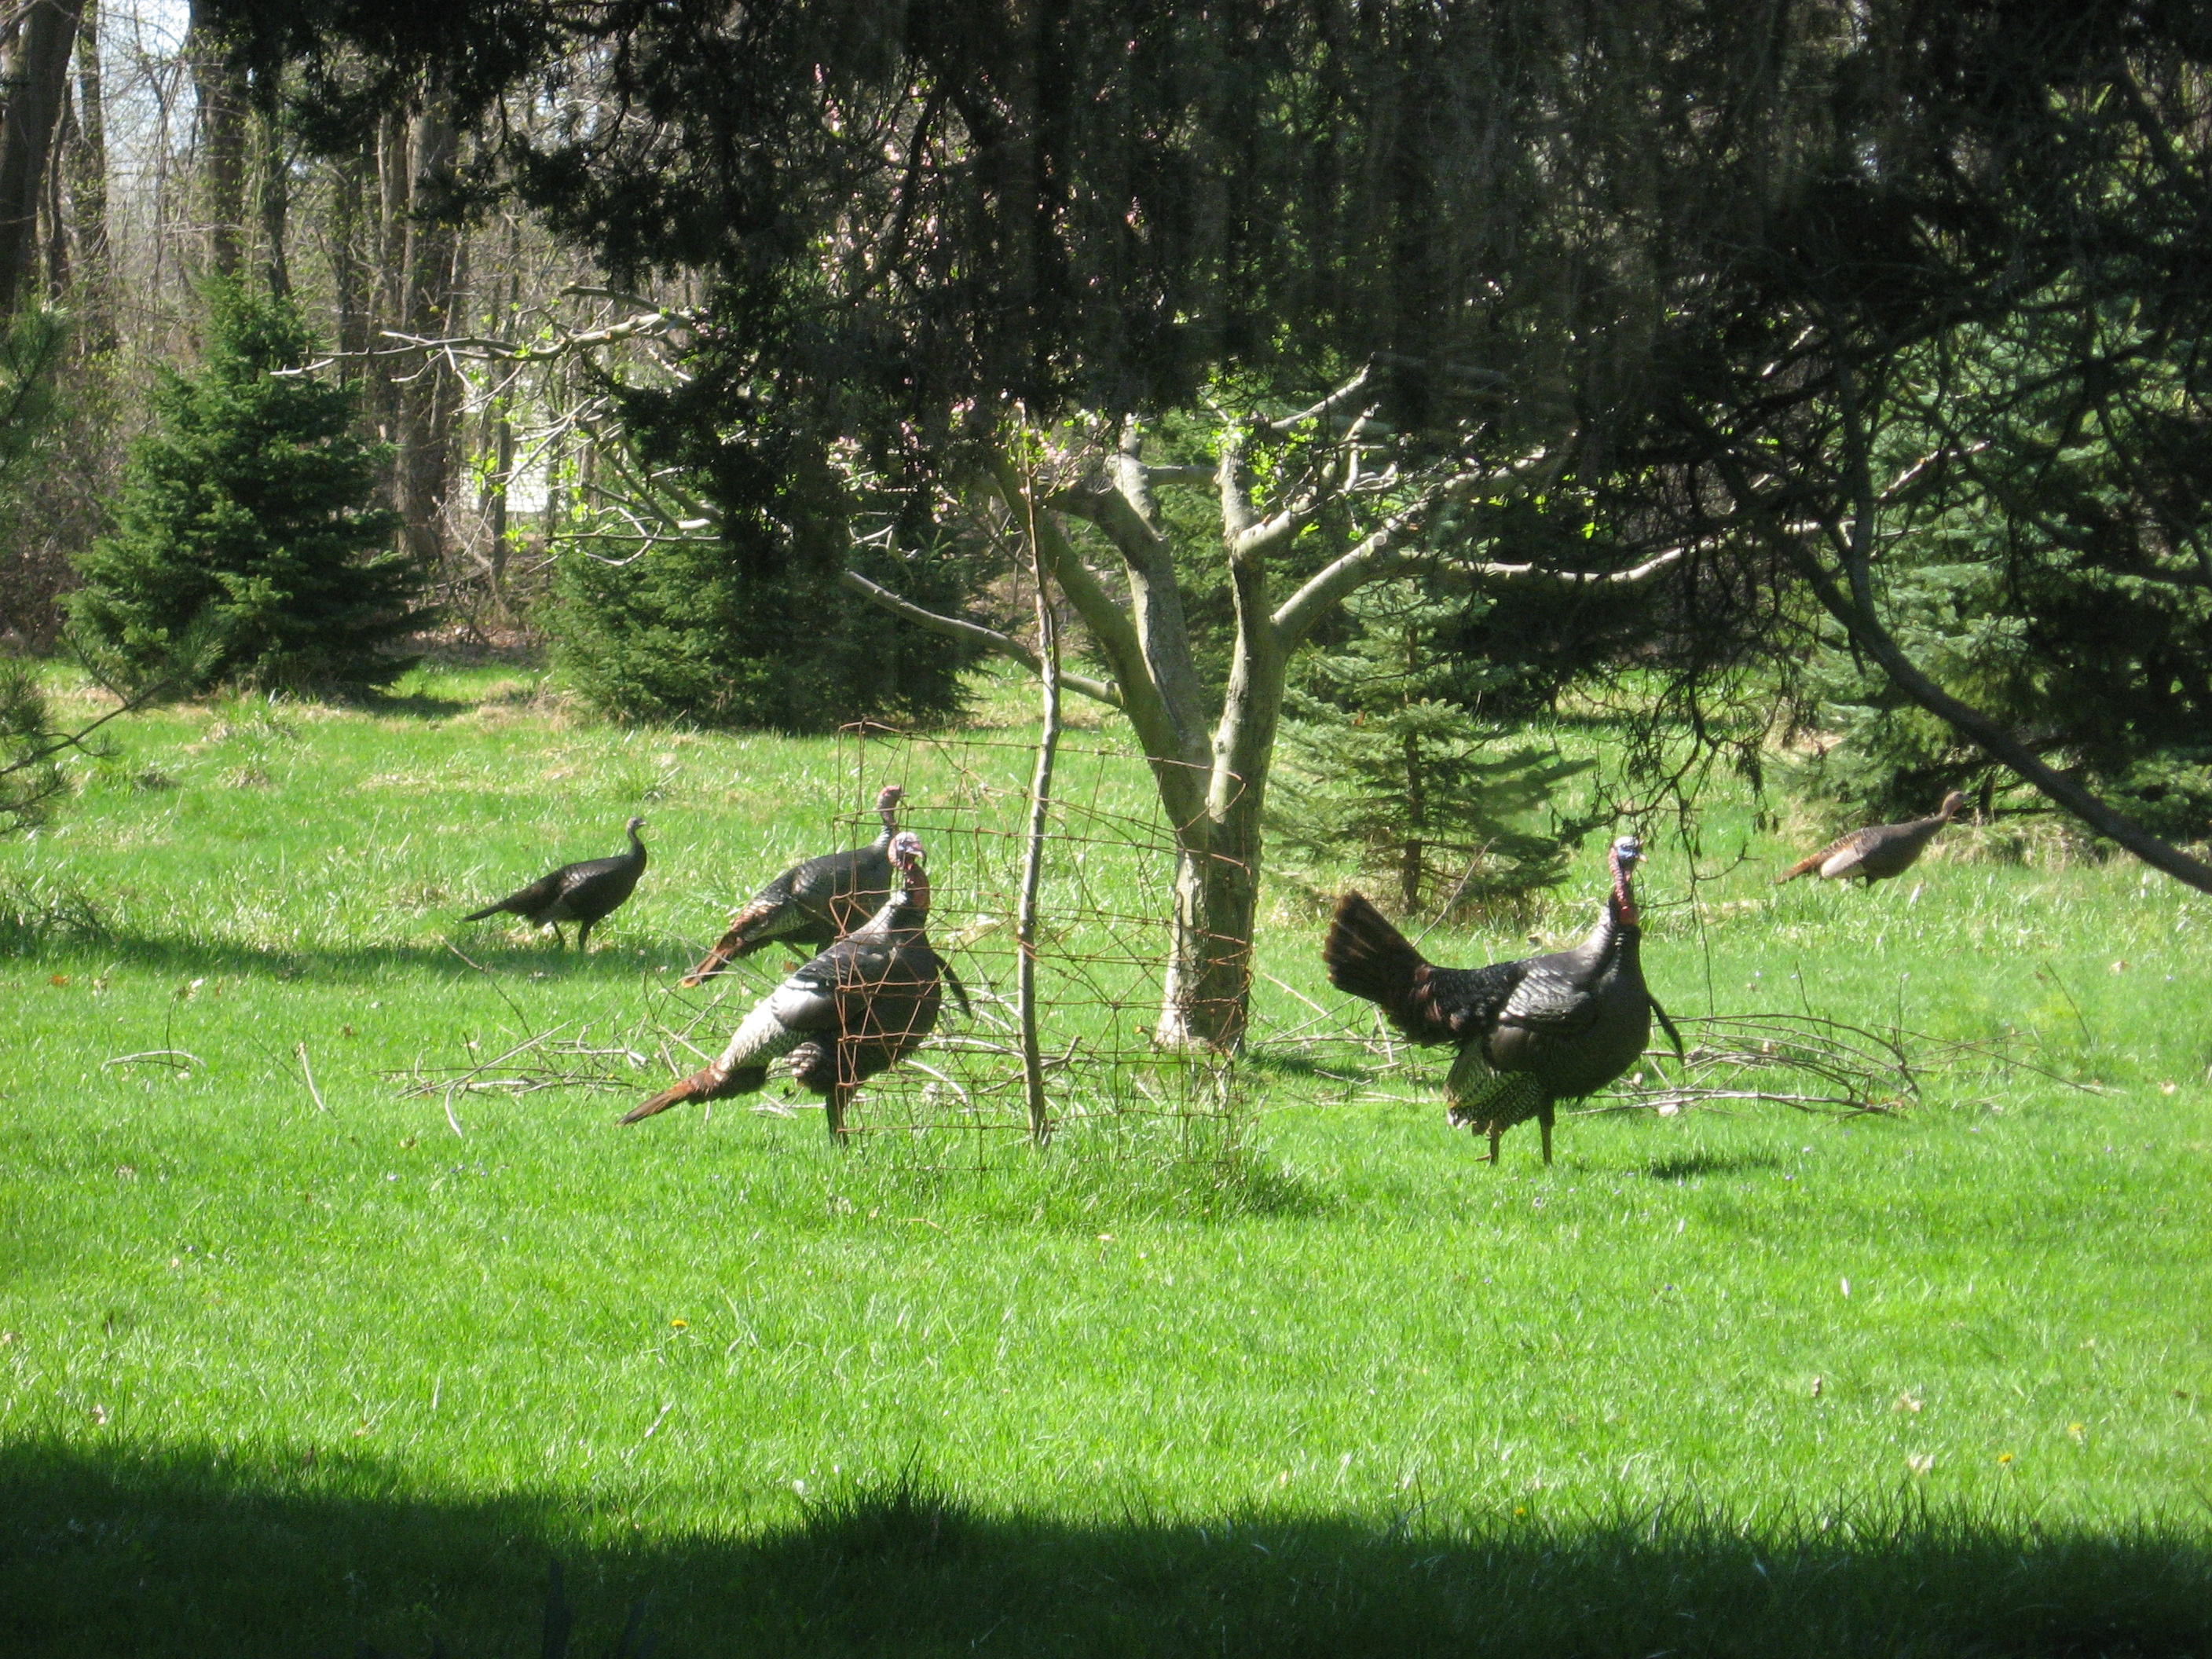 Turkeys at the Preserve